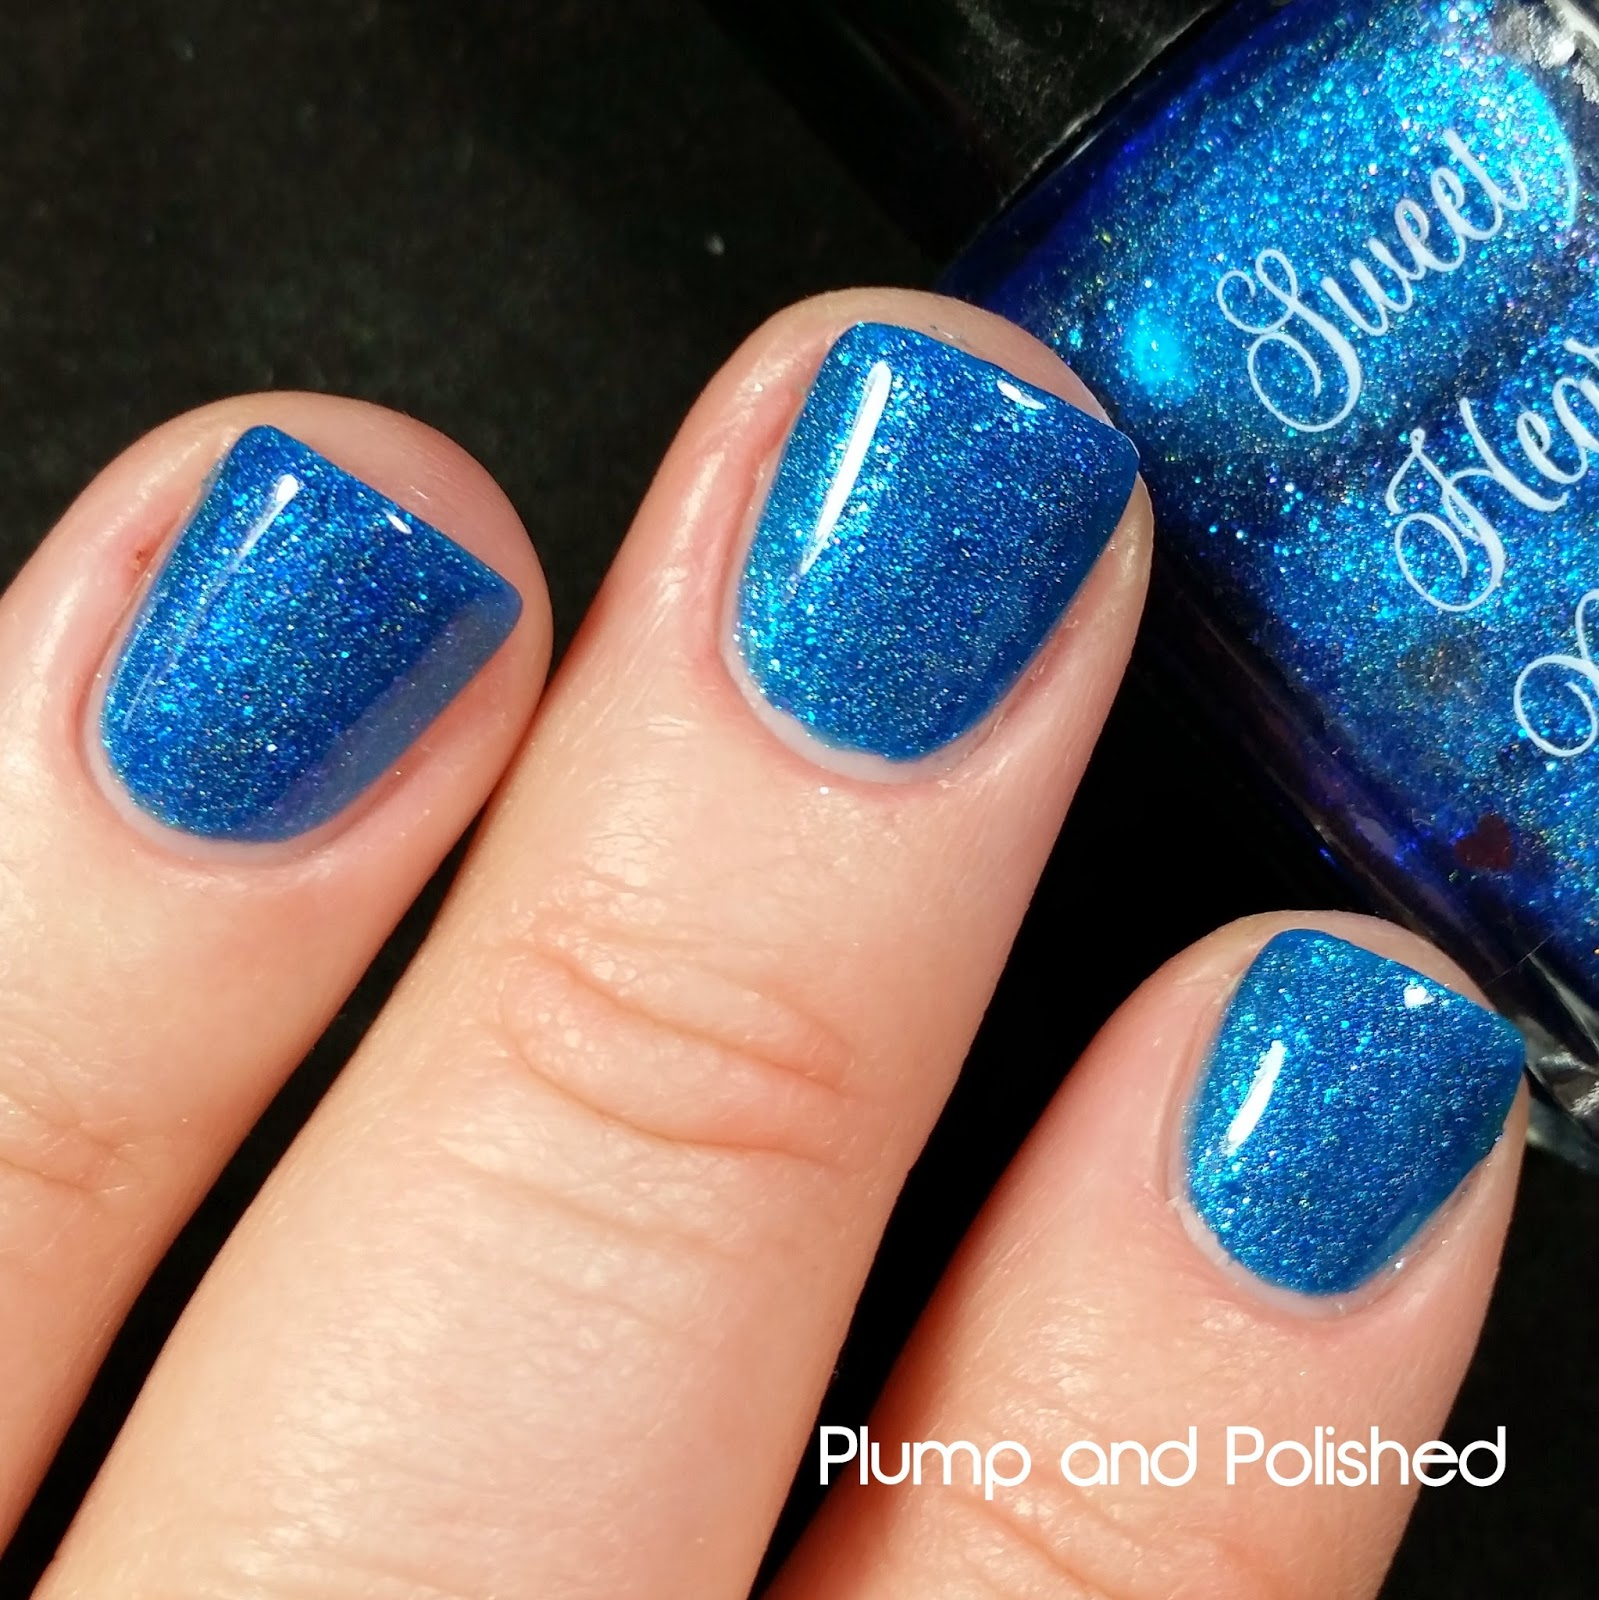 Sweet Heart Polish - April Showers